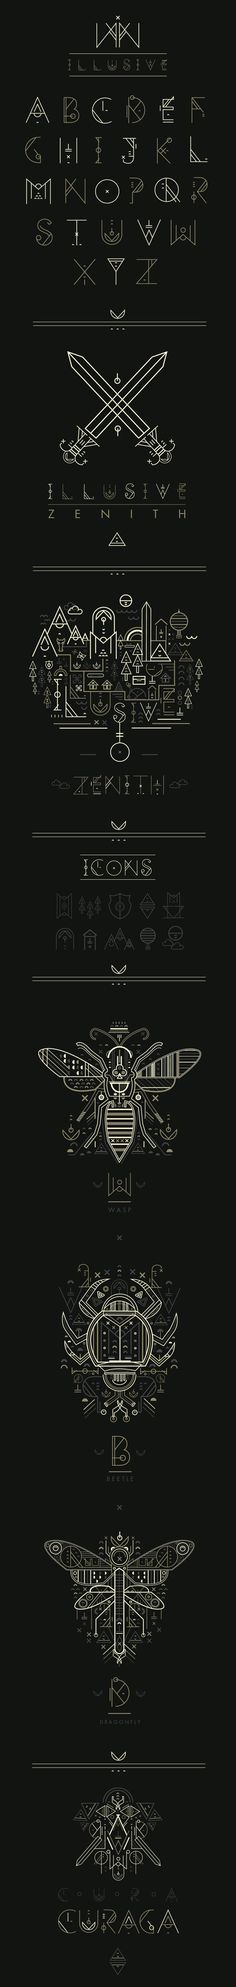 Illusive by Petros Afshar.